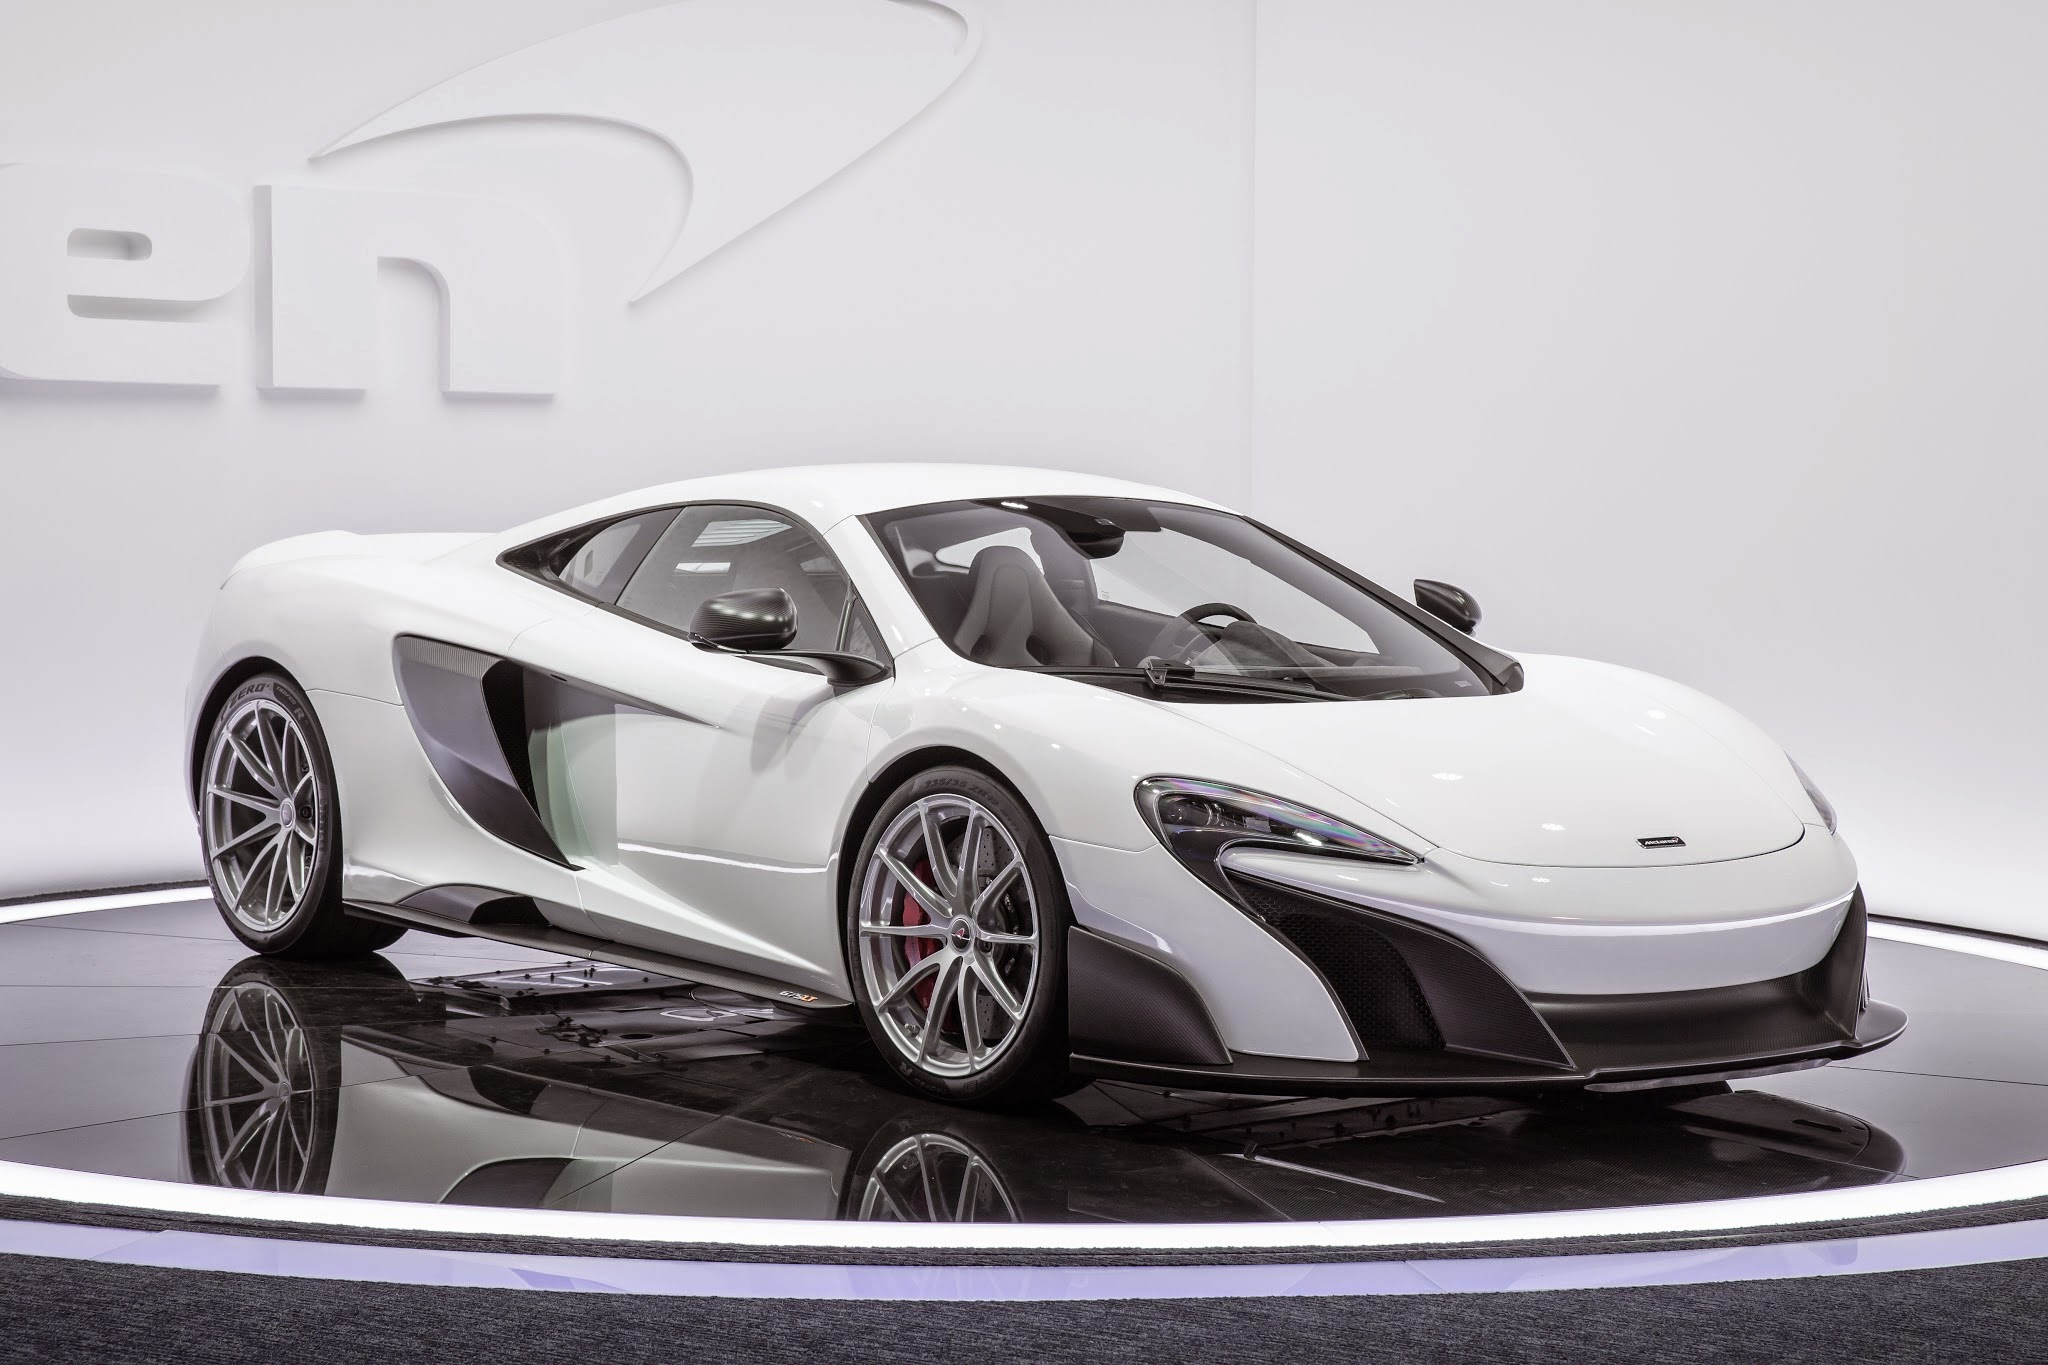 mclaren 675lt debuts in geneva production to be limited to 500